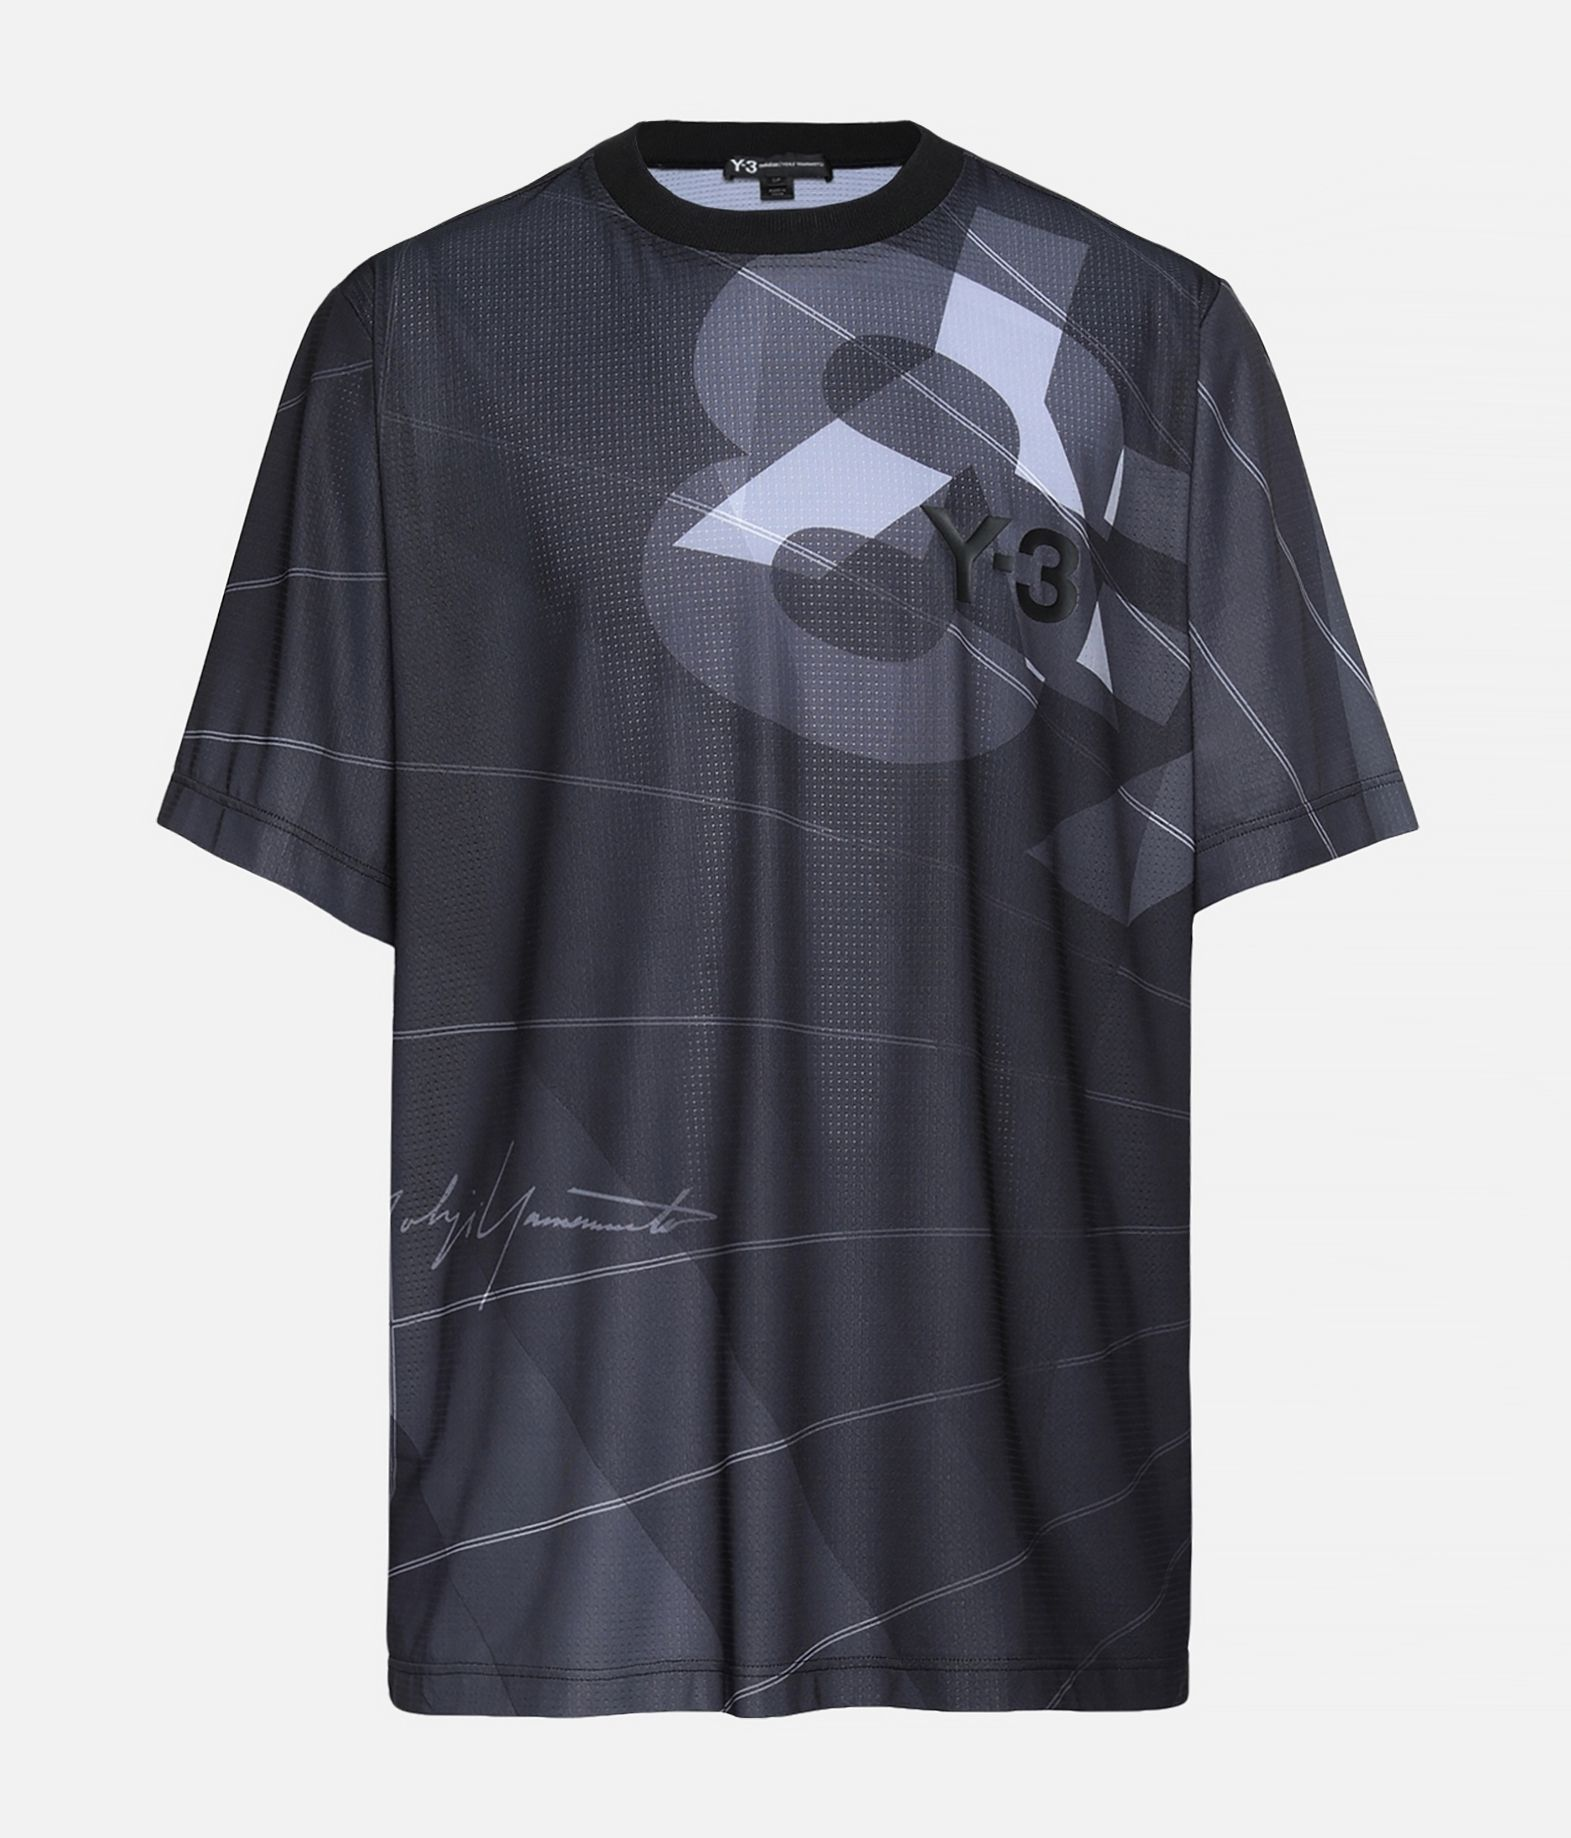 Y-3 Y-3 AOP Football Shirt Short sleeve t-shirt Man f